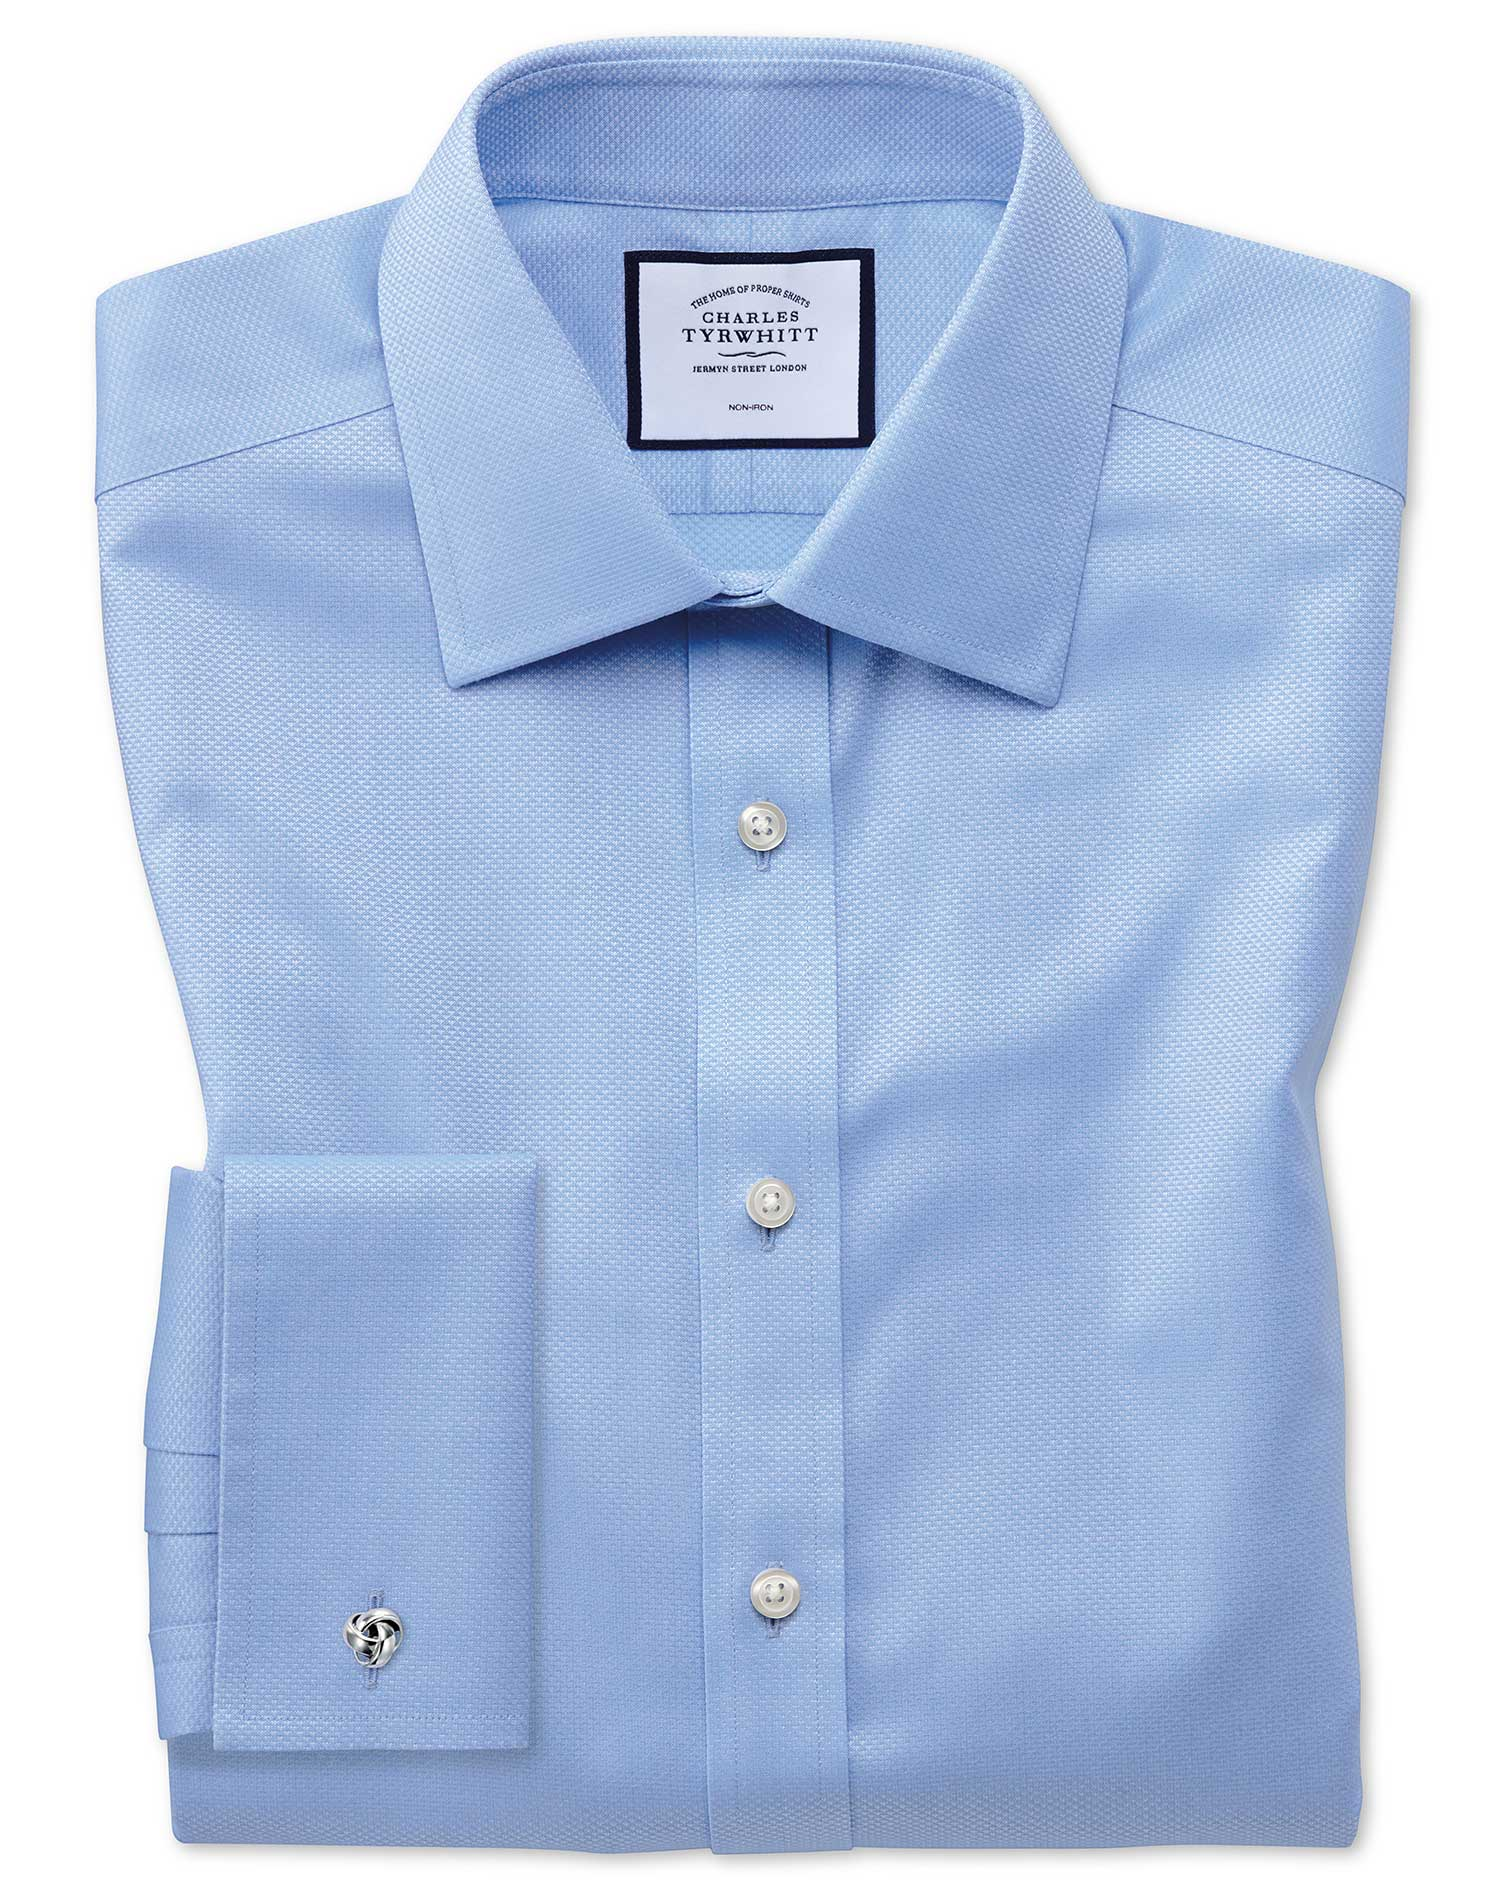 Slim Fit Non-Iron Sky Blue Triangle Weave Cotton Formal Shirt Double Cuff Size 15/34 by Charles Tyrw